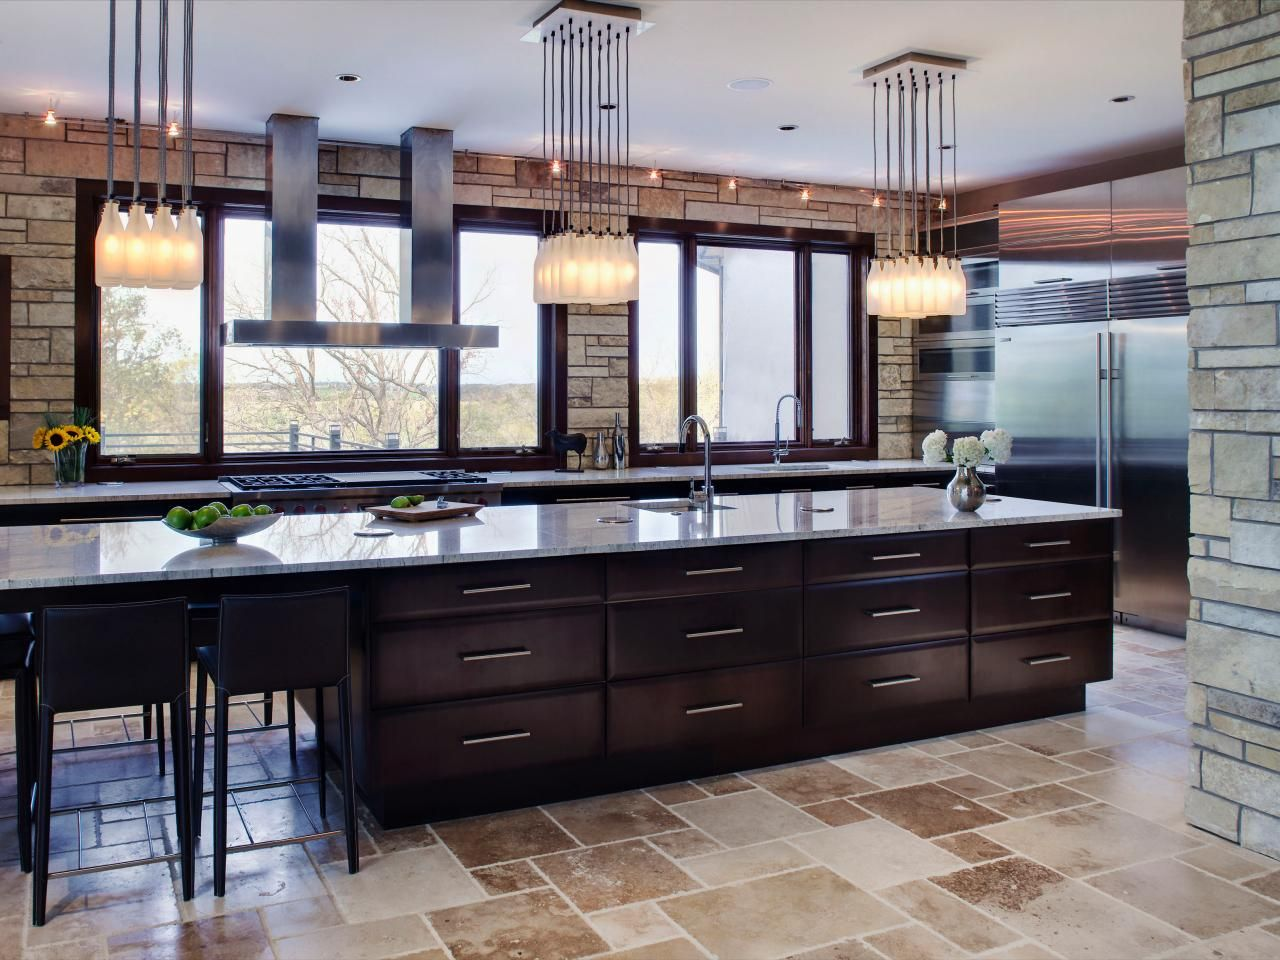 Top 6 Kitchen Layouts | Kitchens, Hgtv and Kitchen design